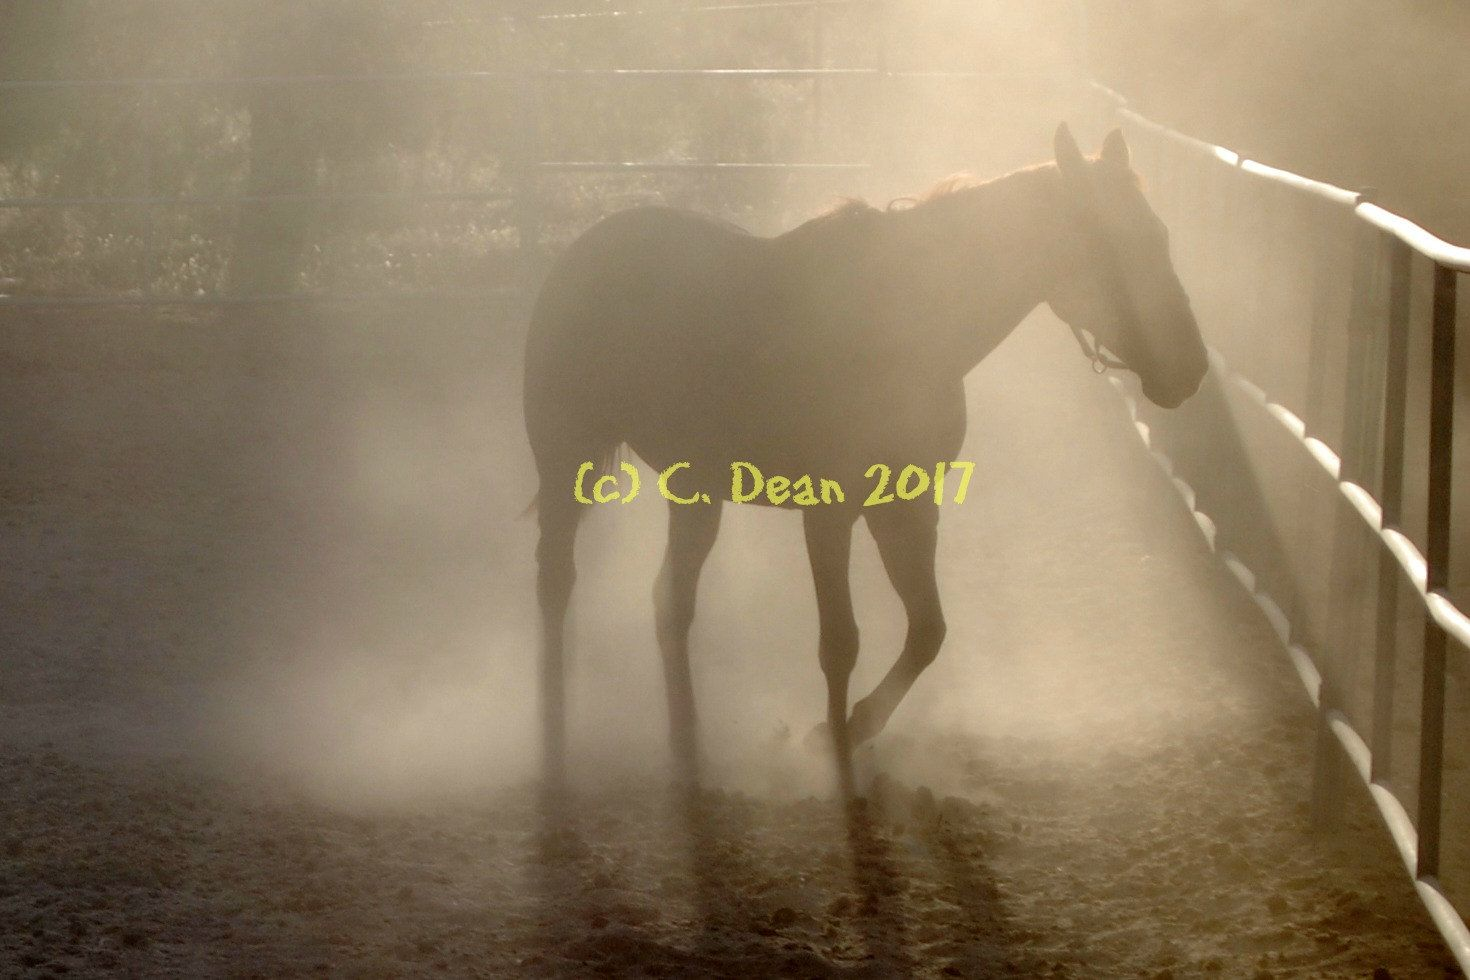 Horse, dust, silhouette, horse silhouette, late afternoon, 5x7 color ...